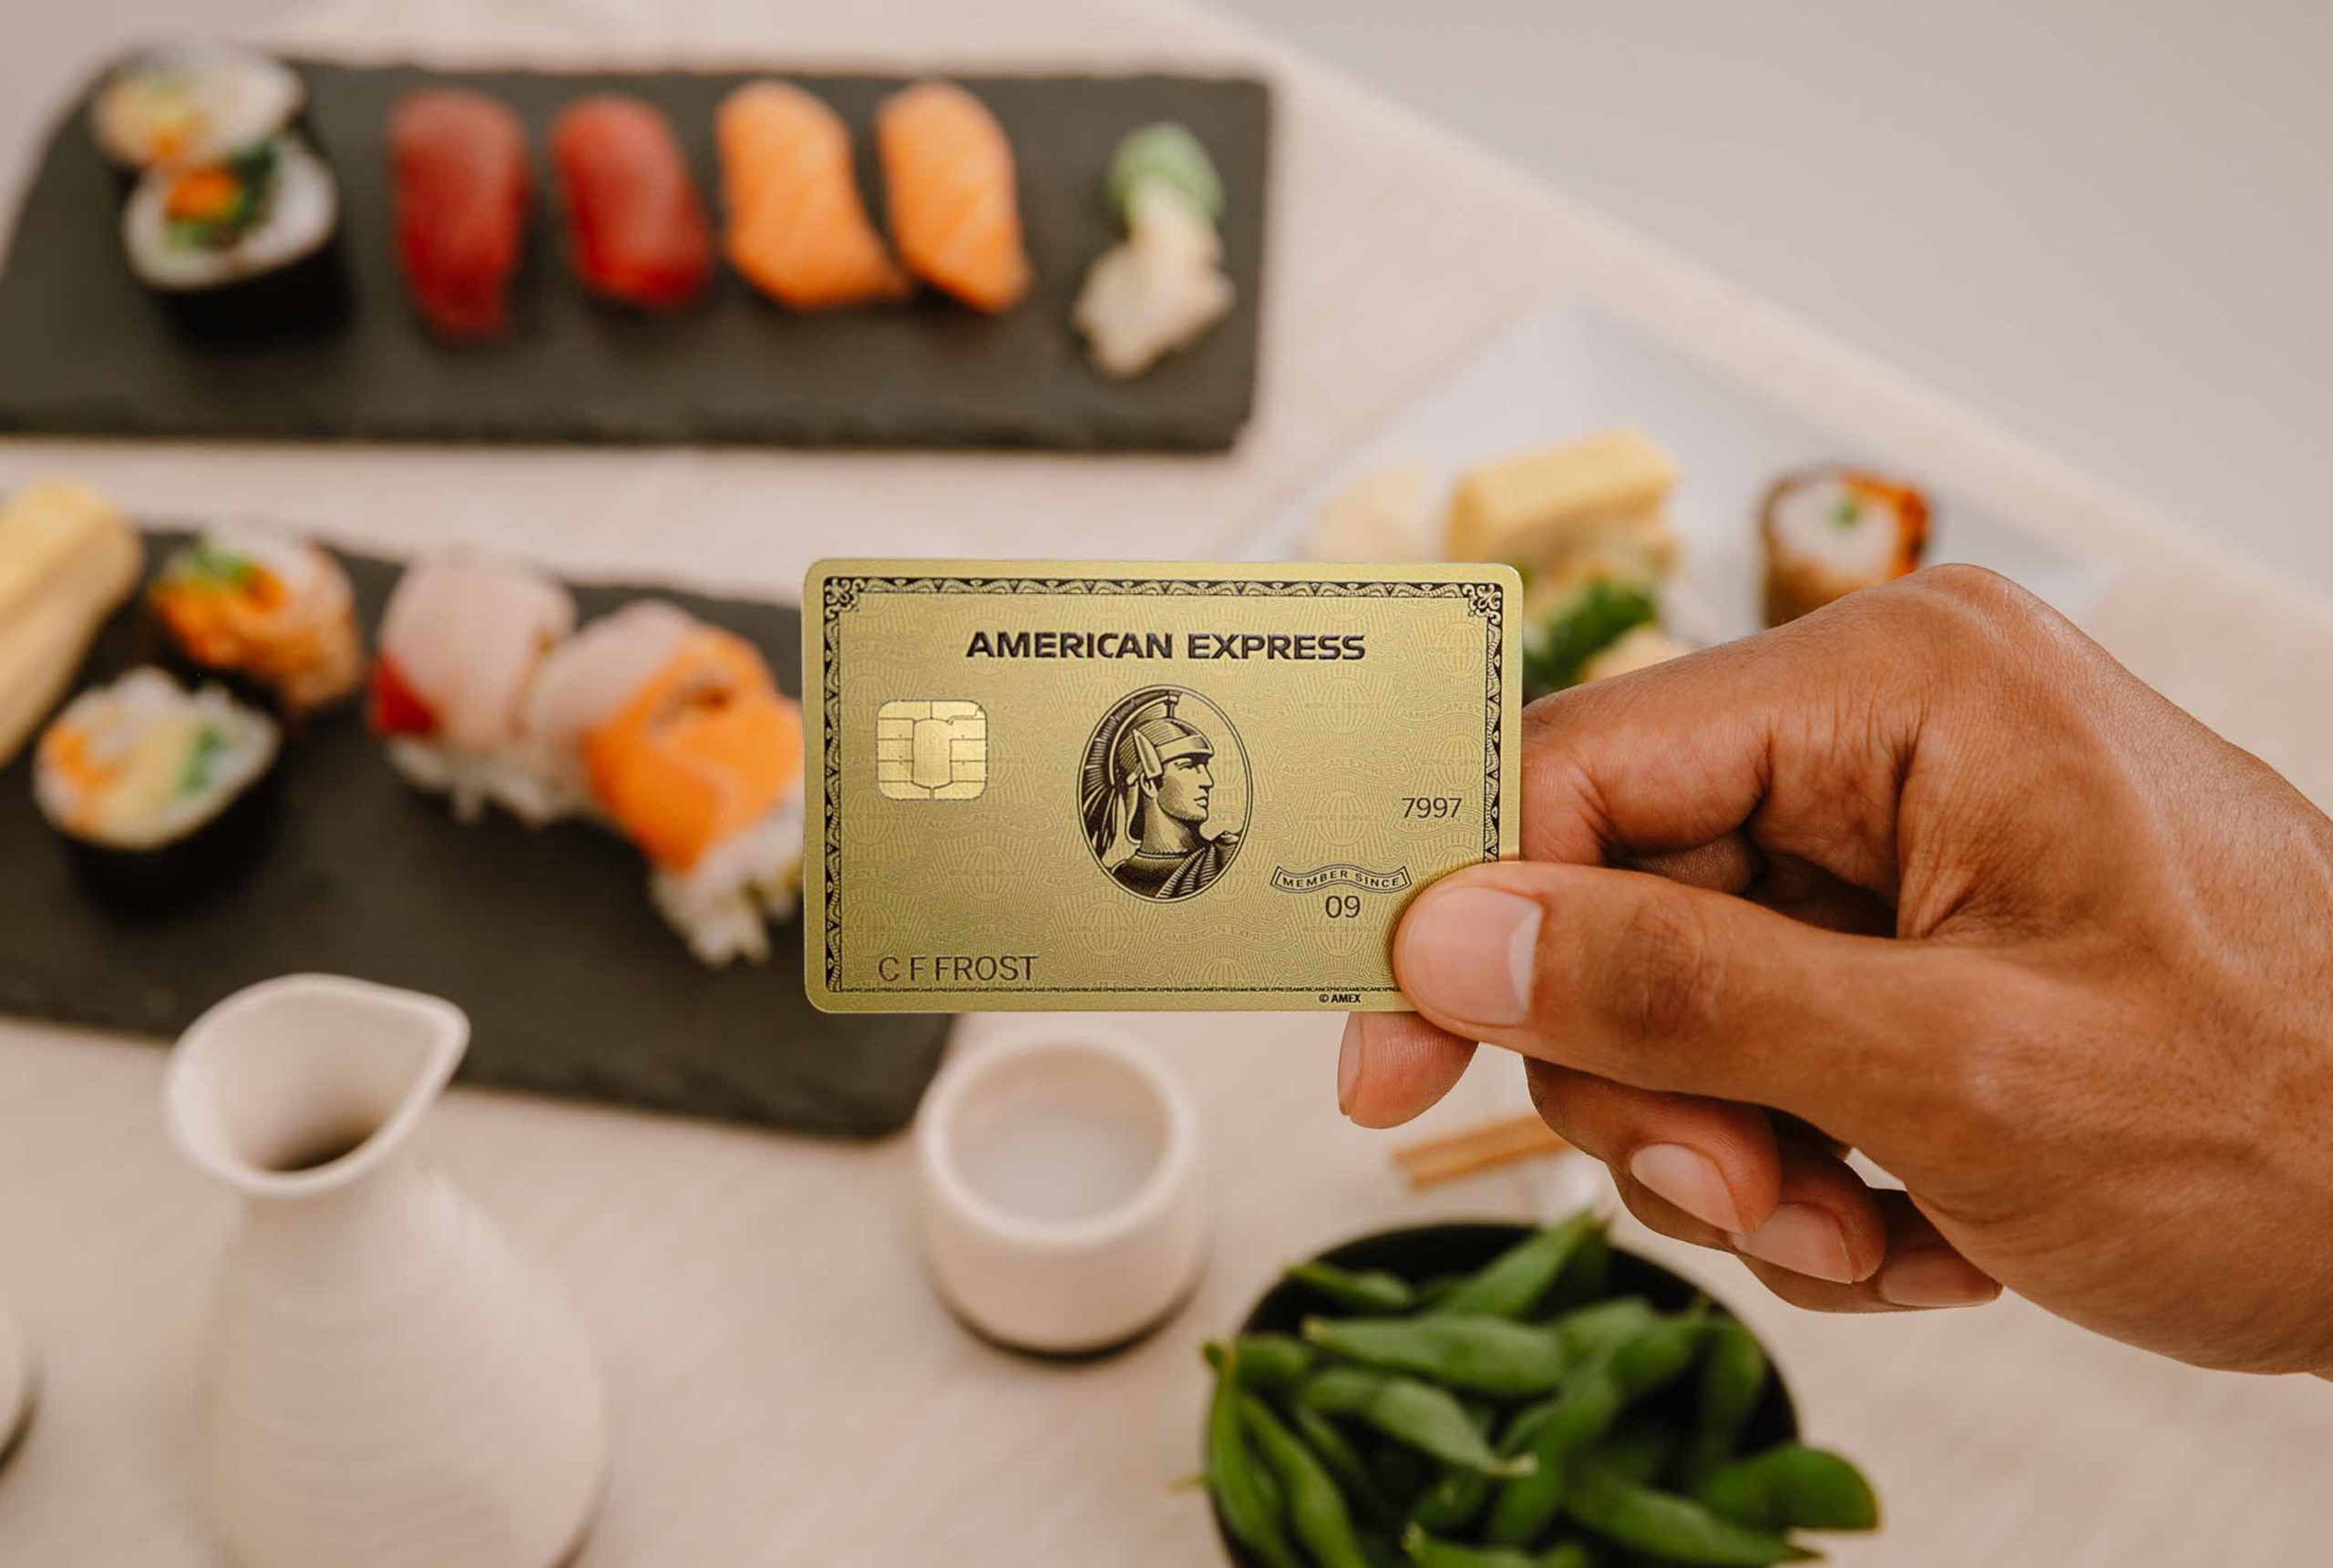 Amex Gold Now Offers $340 In Perks And 60,000 Points For A $250 Fee